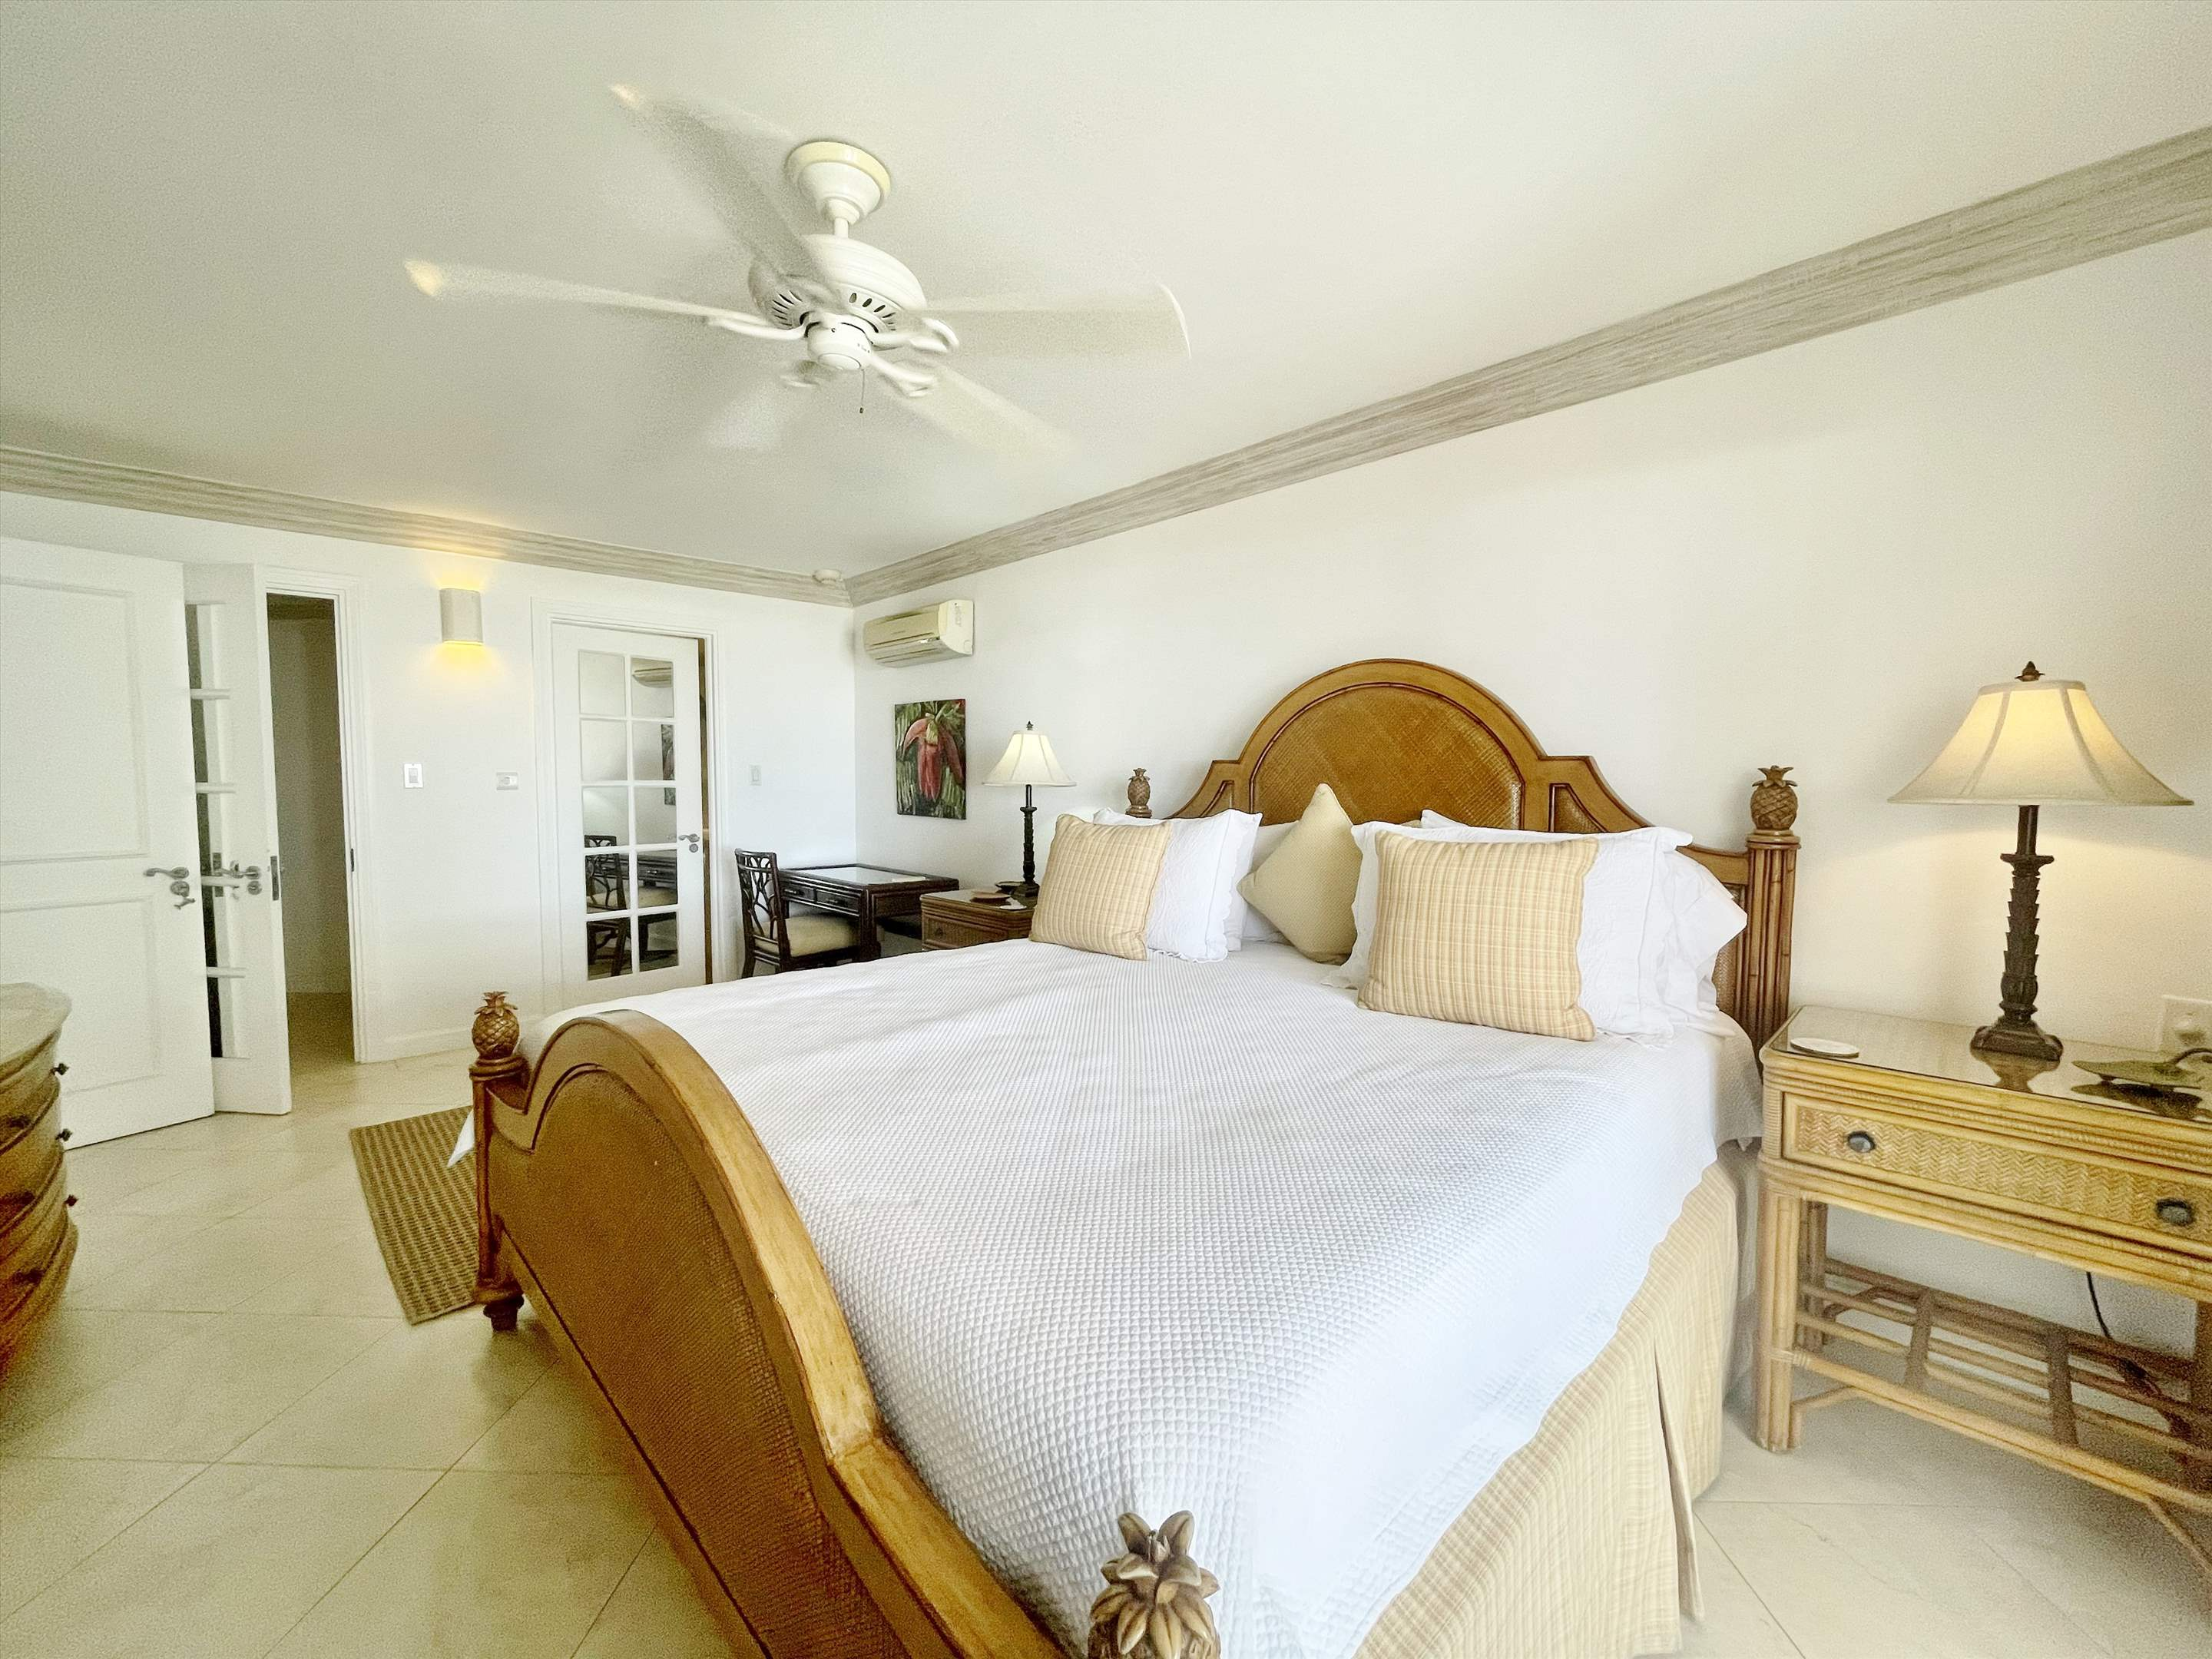 Villas on the Beach 101, 1 bedroom, 1 bedroom apartment in St. James & West Coast, Barbados Photo #11